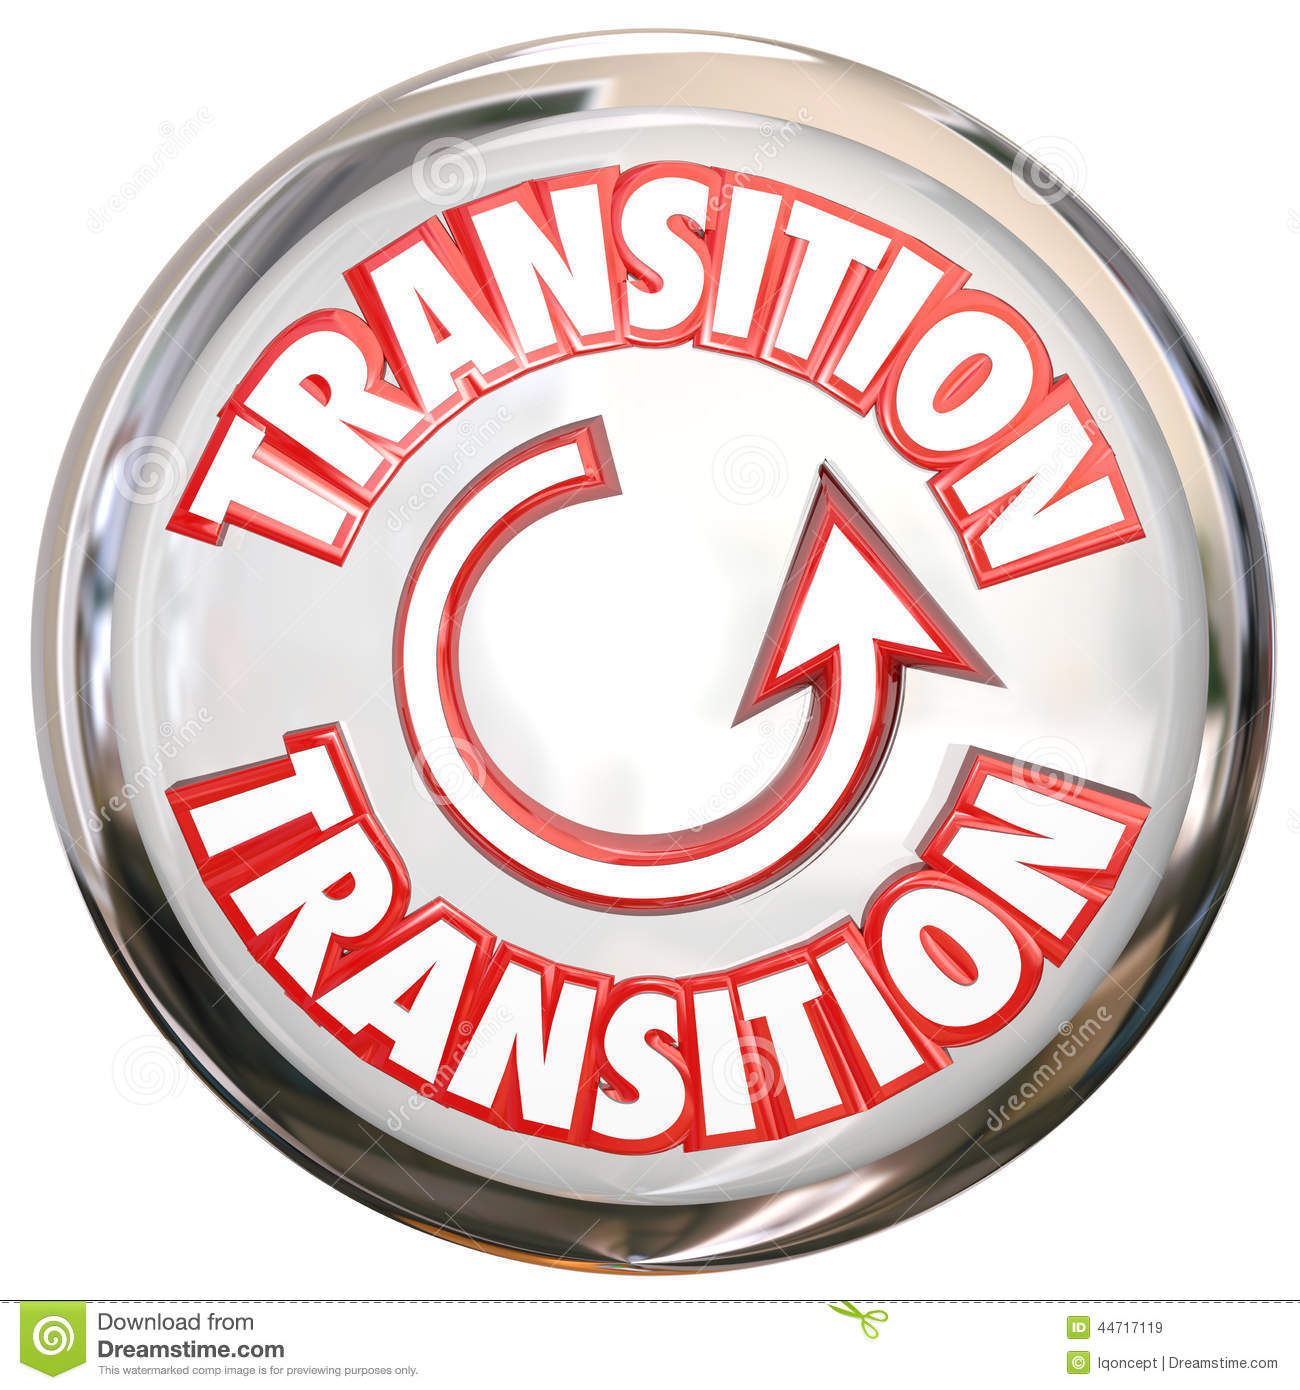 Transition Stock Illustrations.